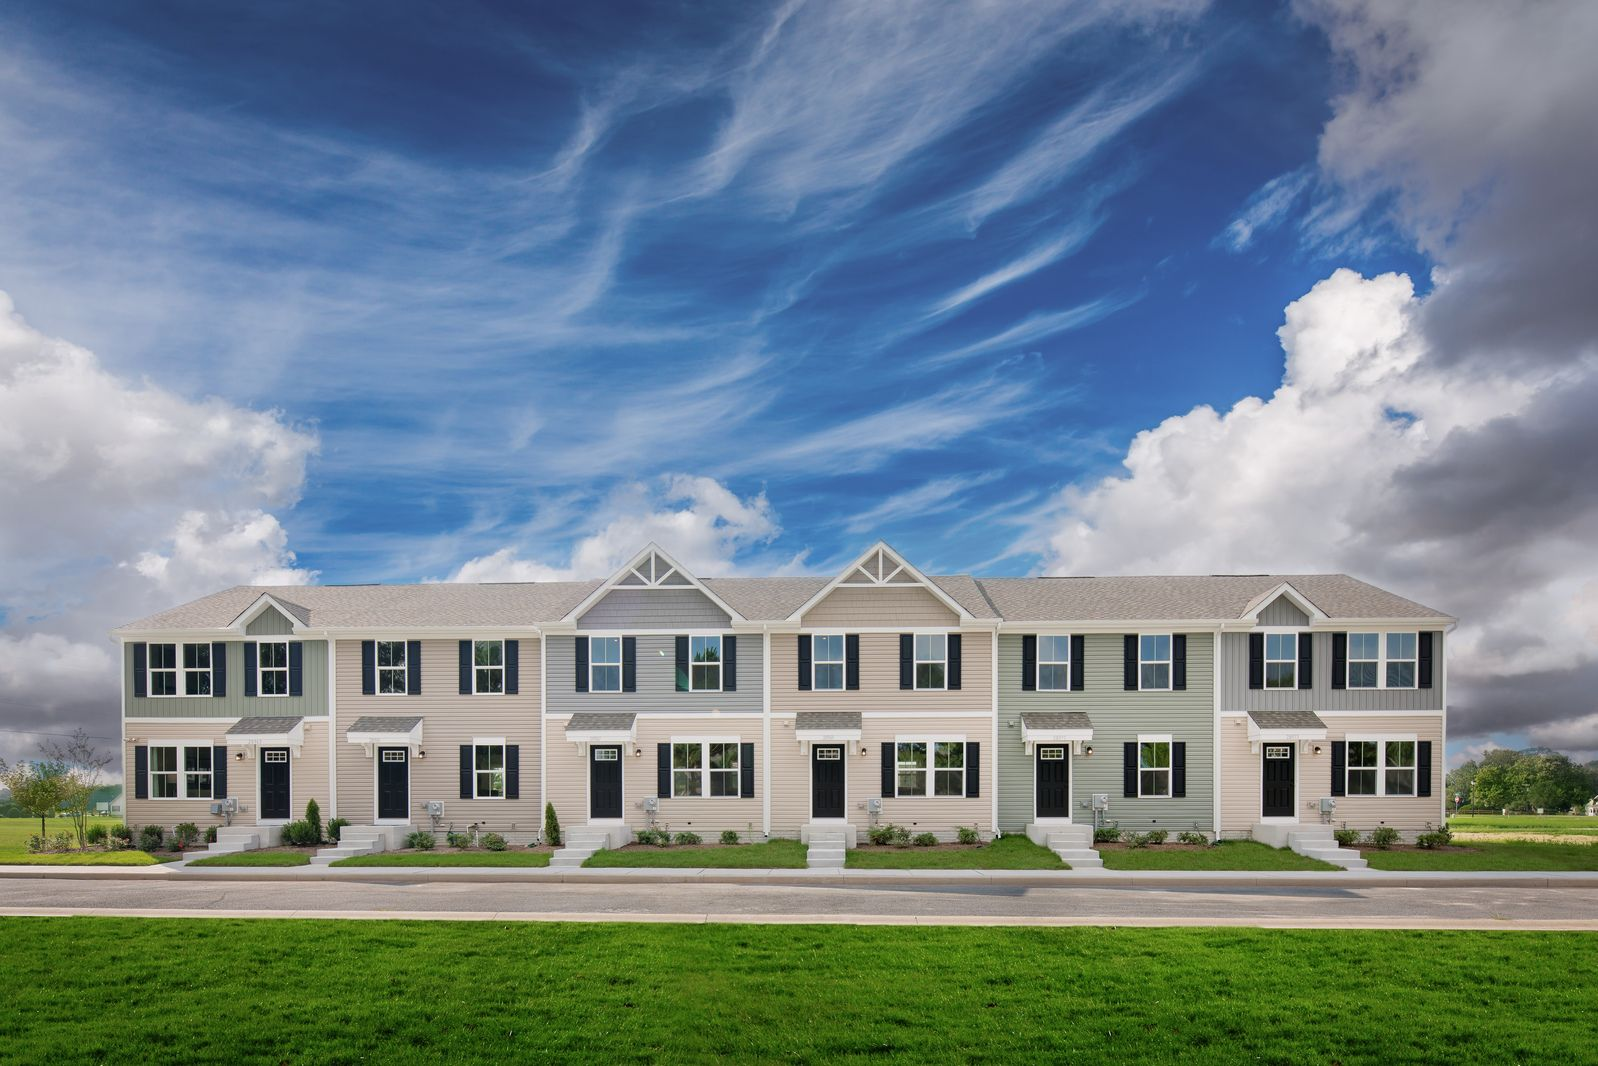 Limited homesites are being released every month:Join the VIP Listand be notified when new homesites are released in this sought-after community